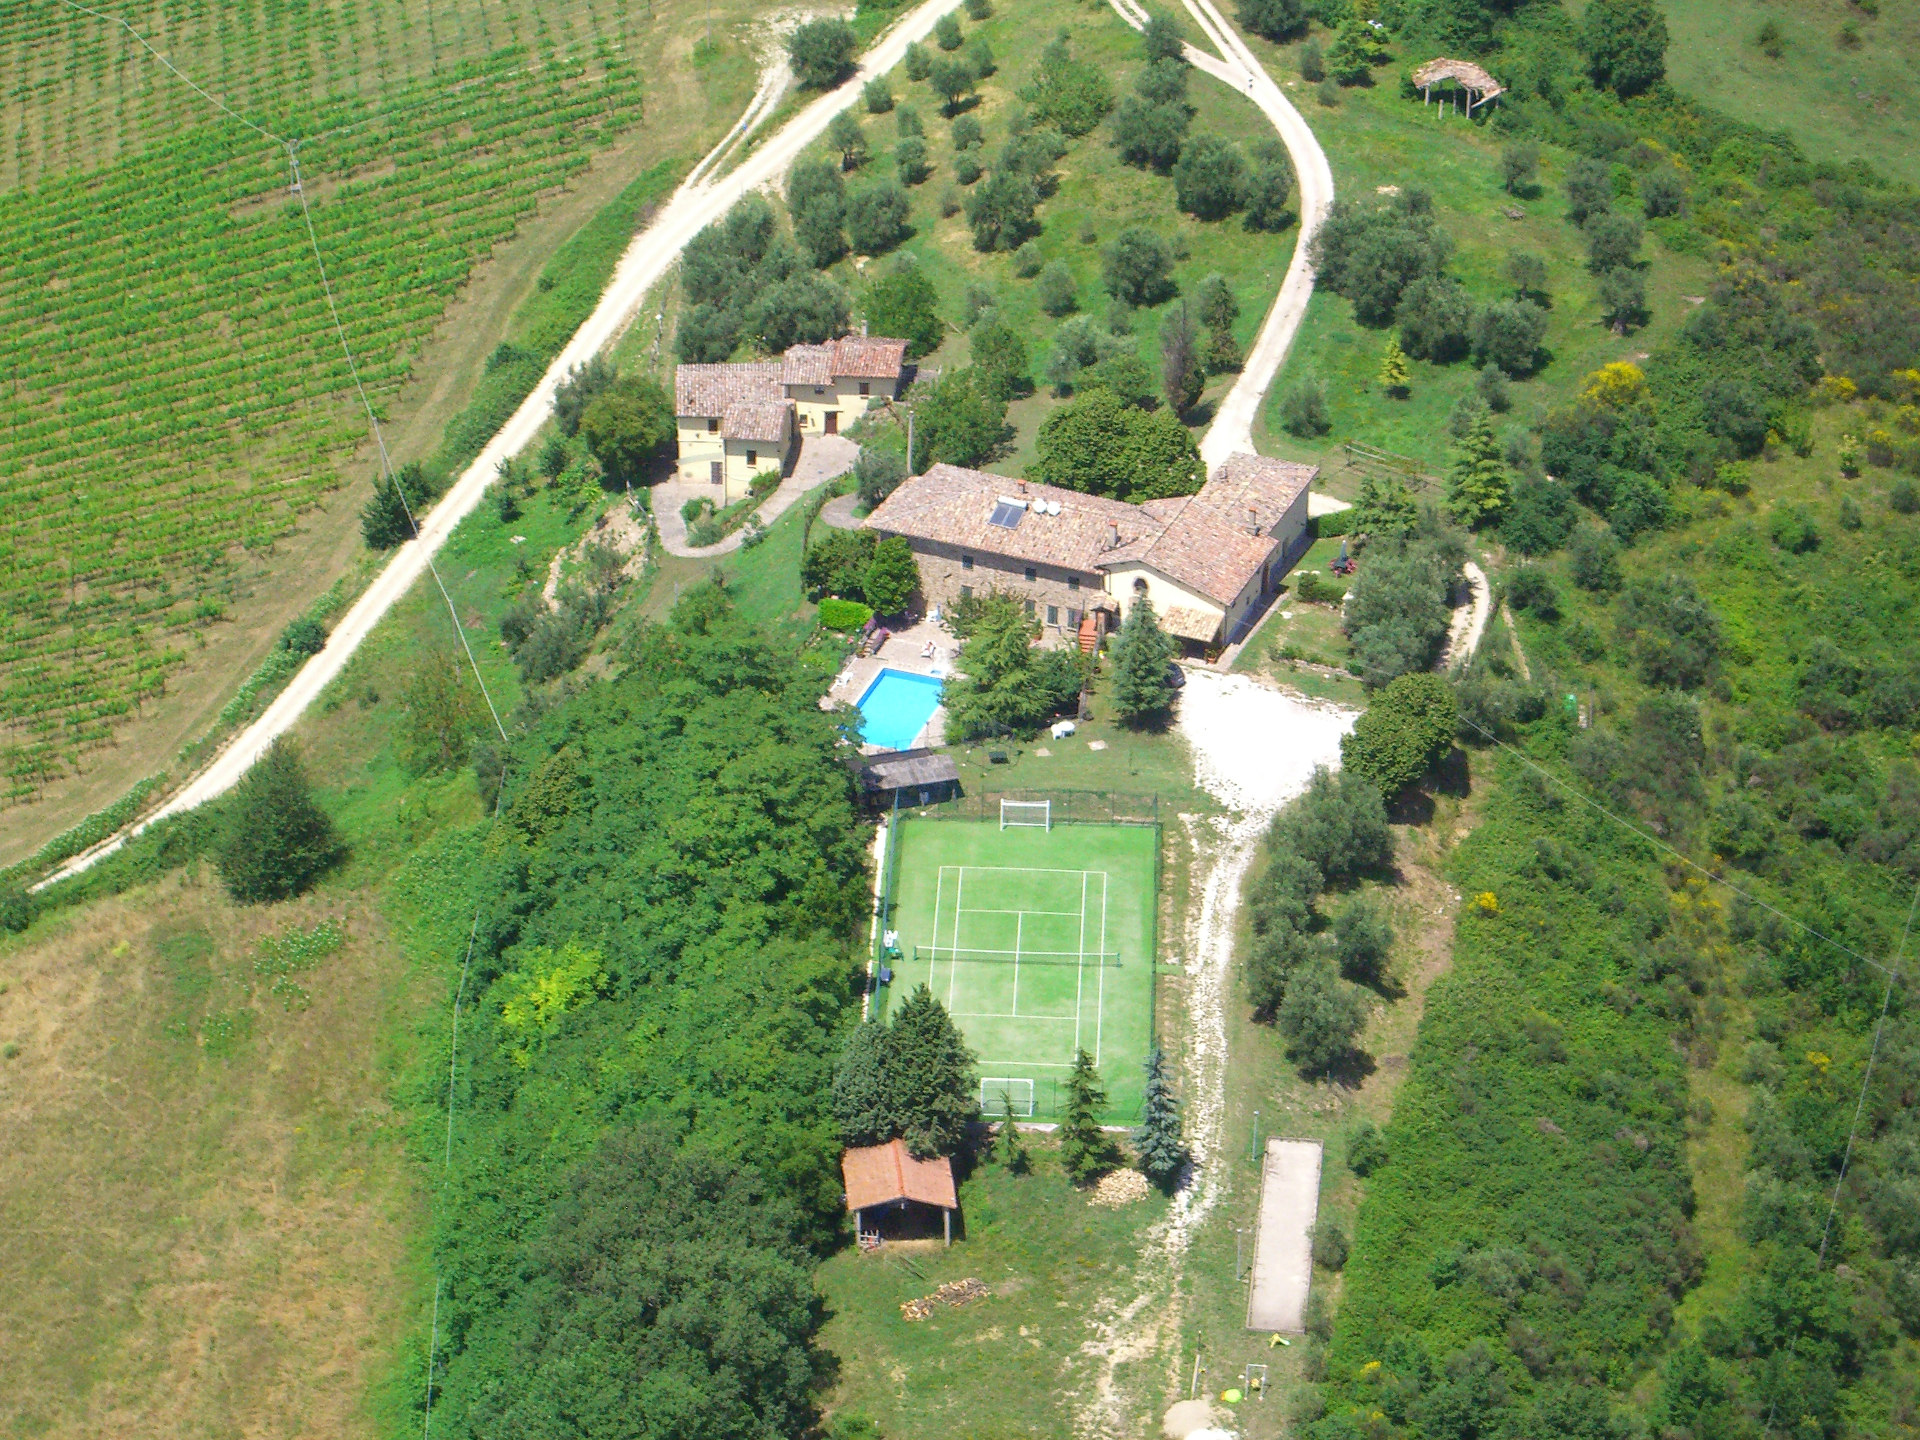 Residenza agrituristica colle del sole vista satellitare